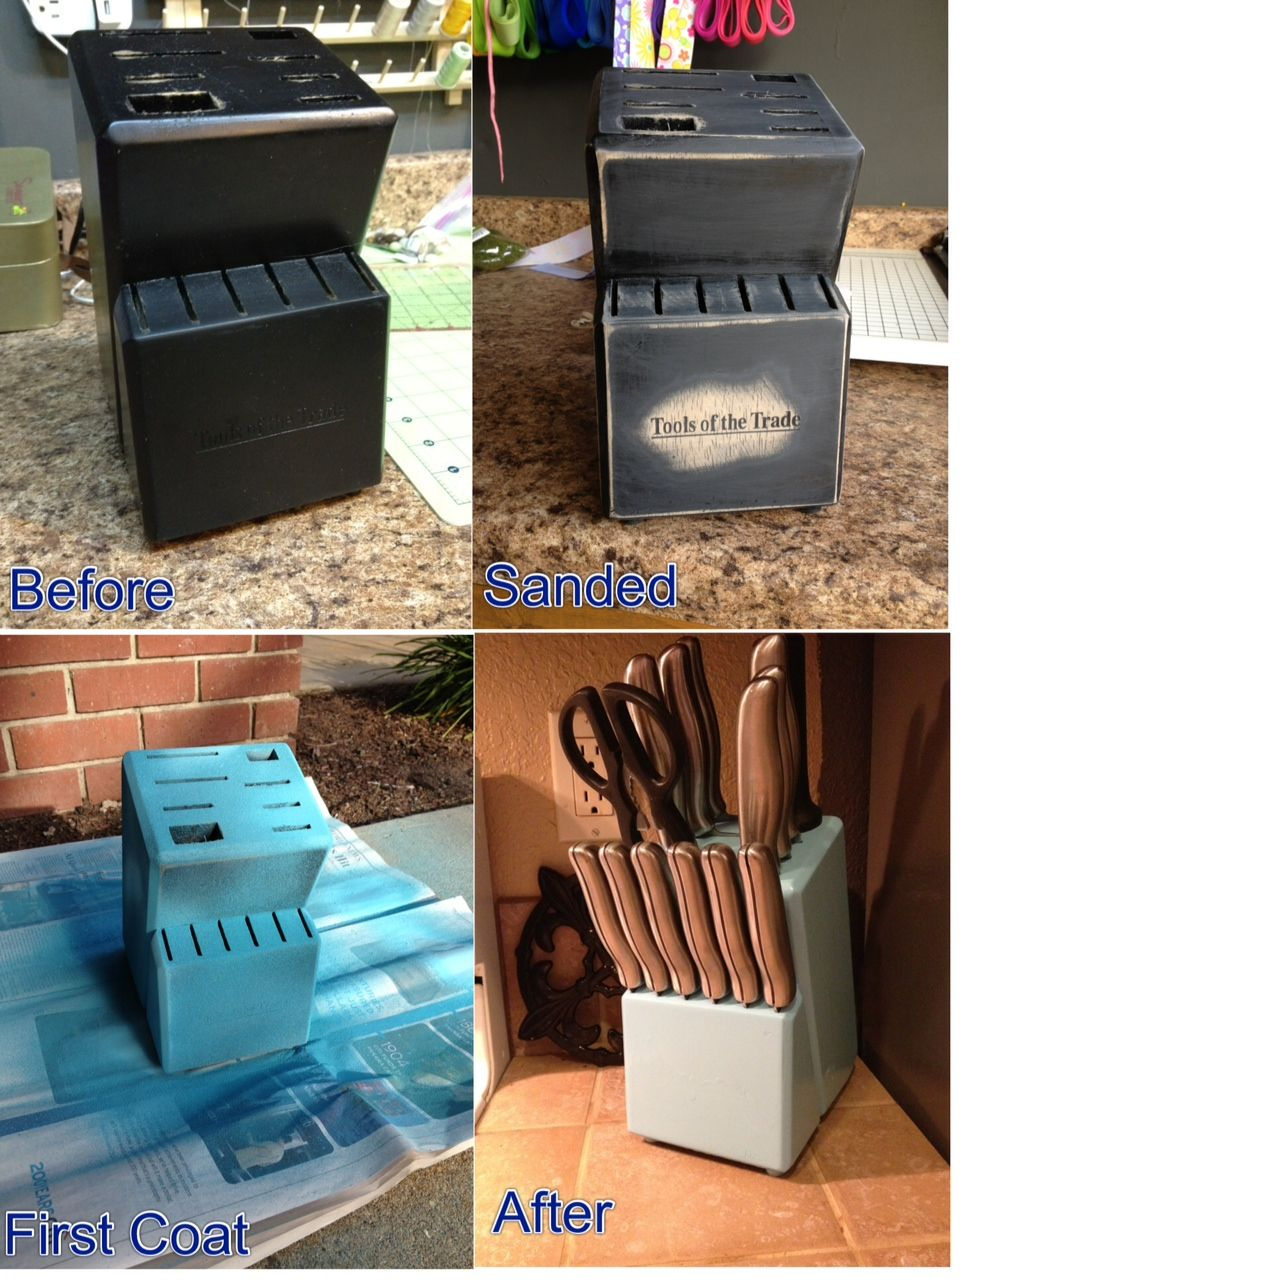 superb Diy Kitchen Decorating Projects #3: Refurbished Knife Block Project {DIY Kitchen Decor} www.pinsandpetals.com